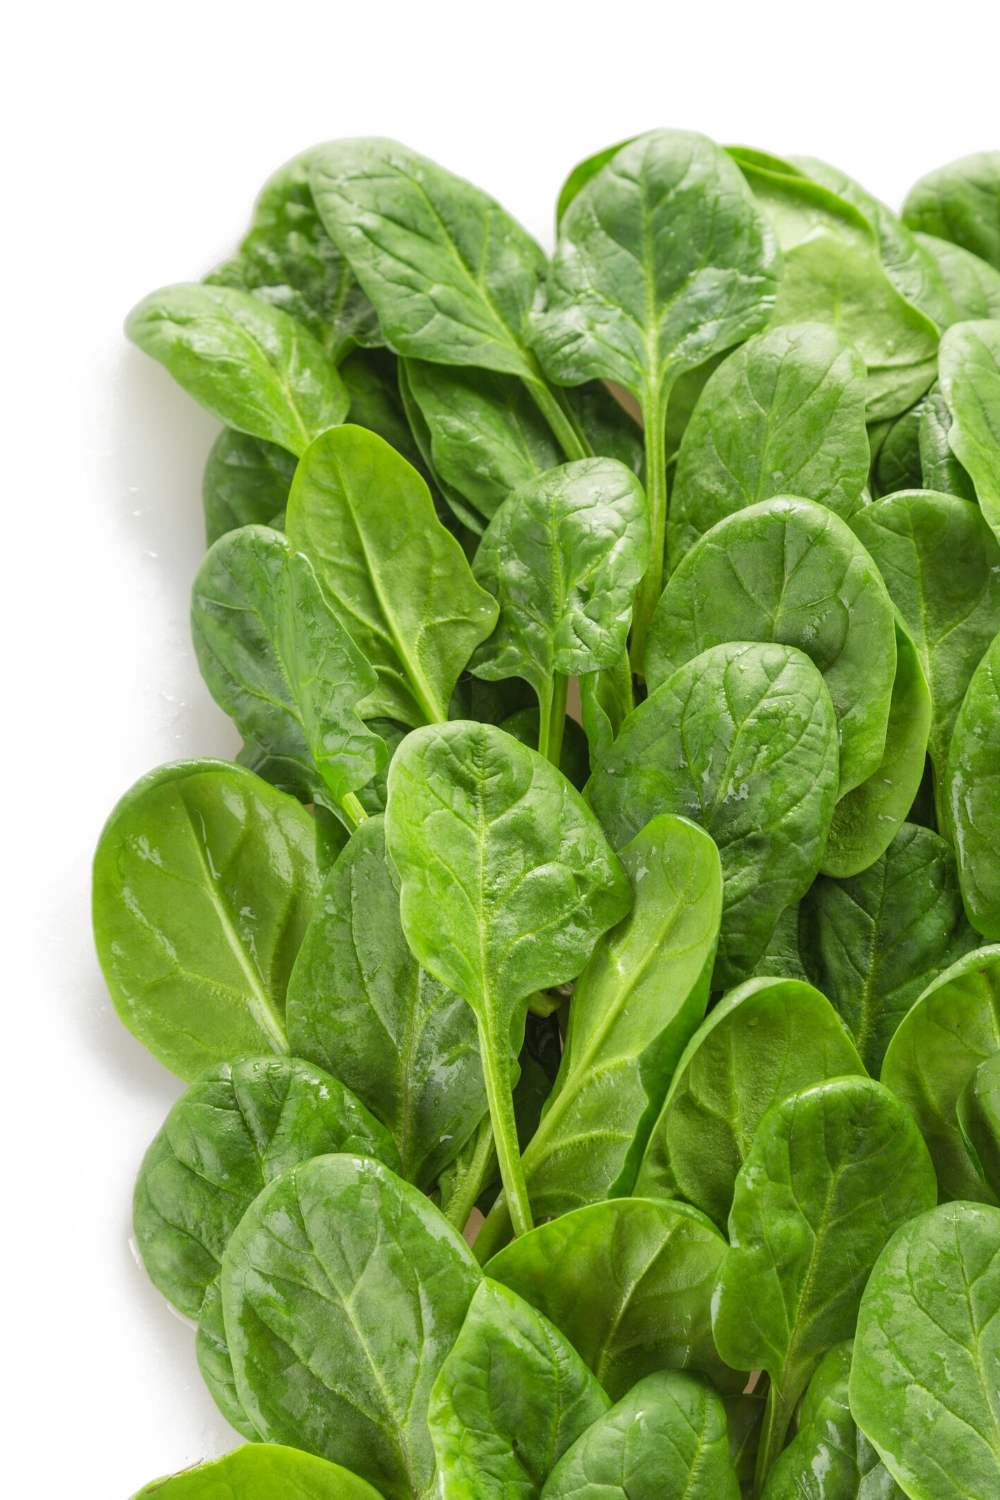 Adding fresh greens, such as spinach, to your Superfood Smoothie Recipe adds a ton of fiber and other nutrients to make a complete meal